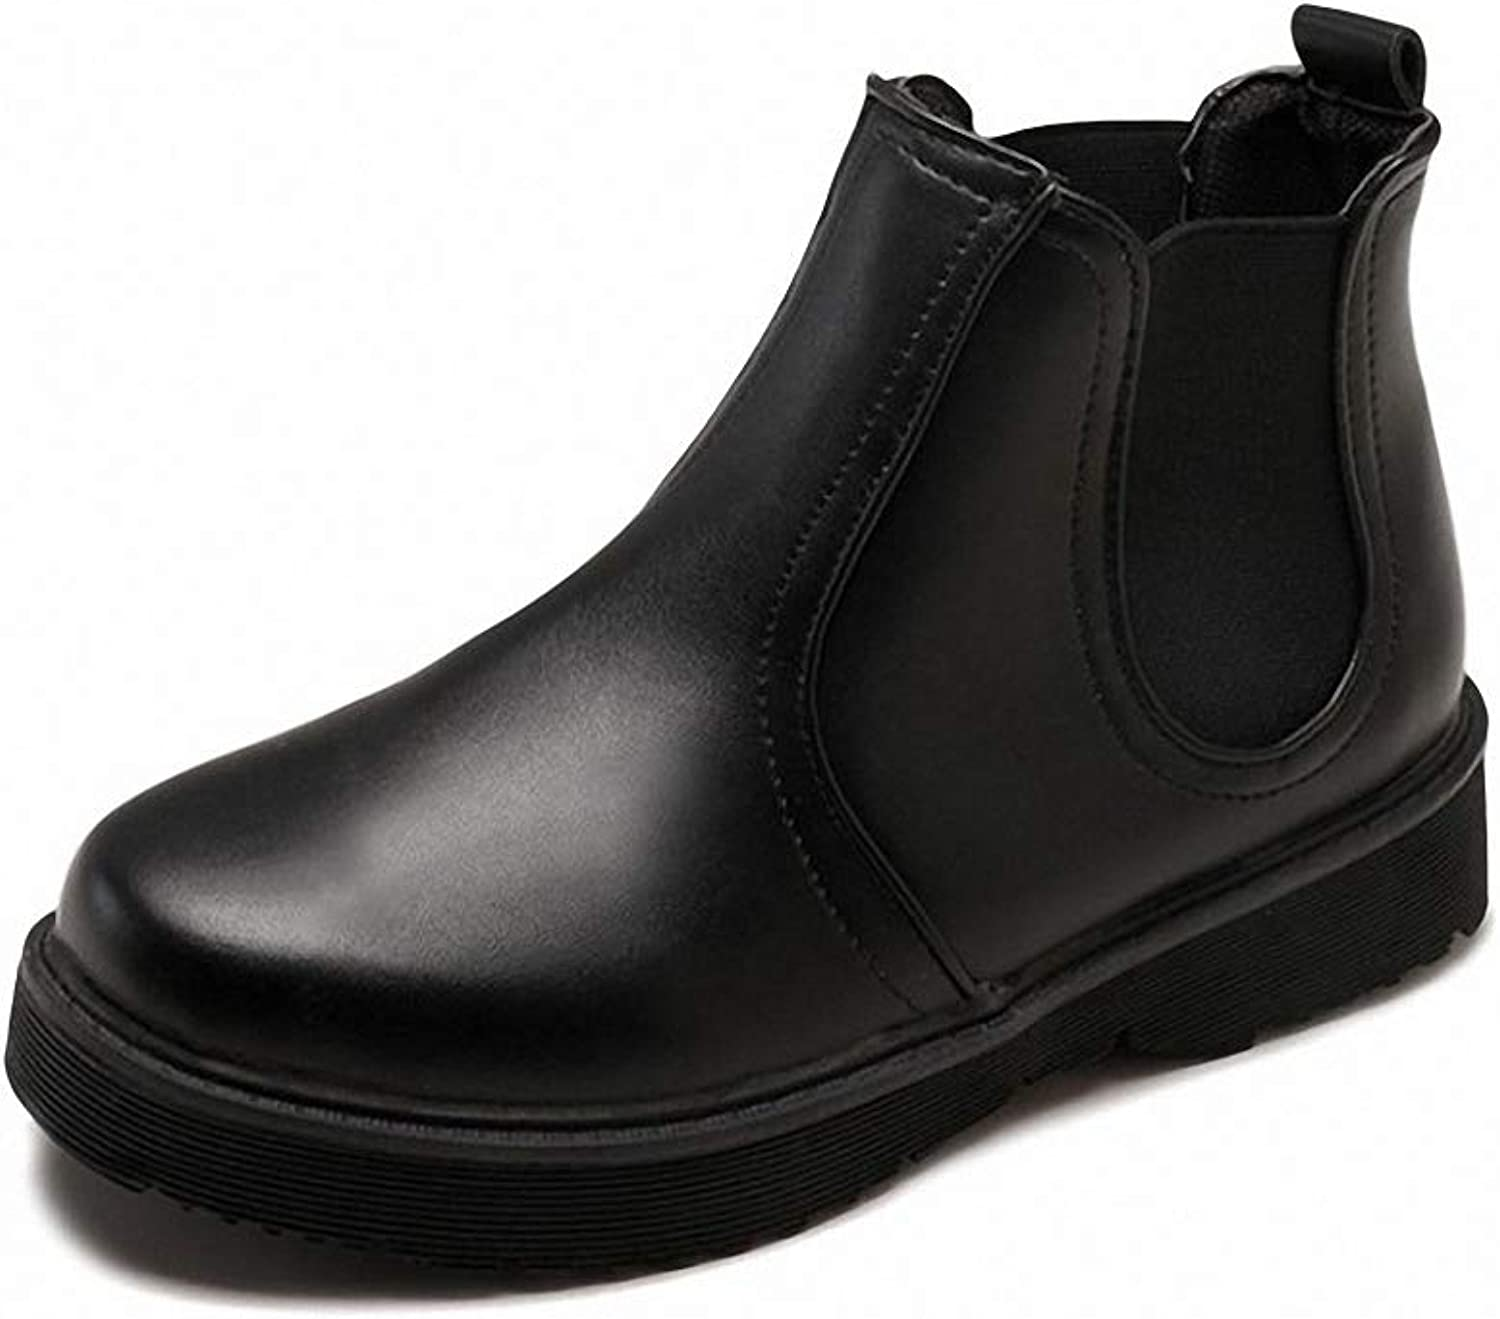 Kyle Walsh Pa Women PU Leather Ankle Boots,Black Brown Plus Size Flat Platform Slip On Boots